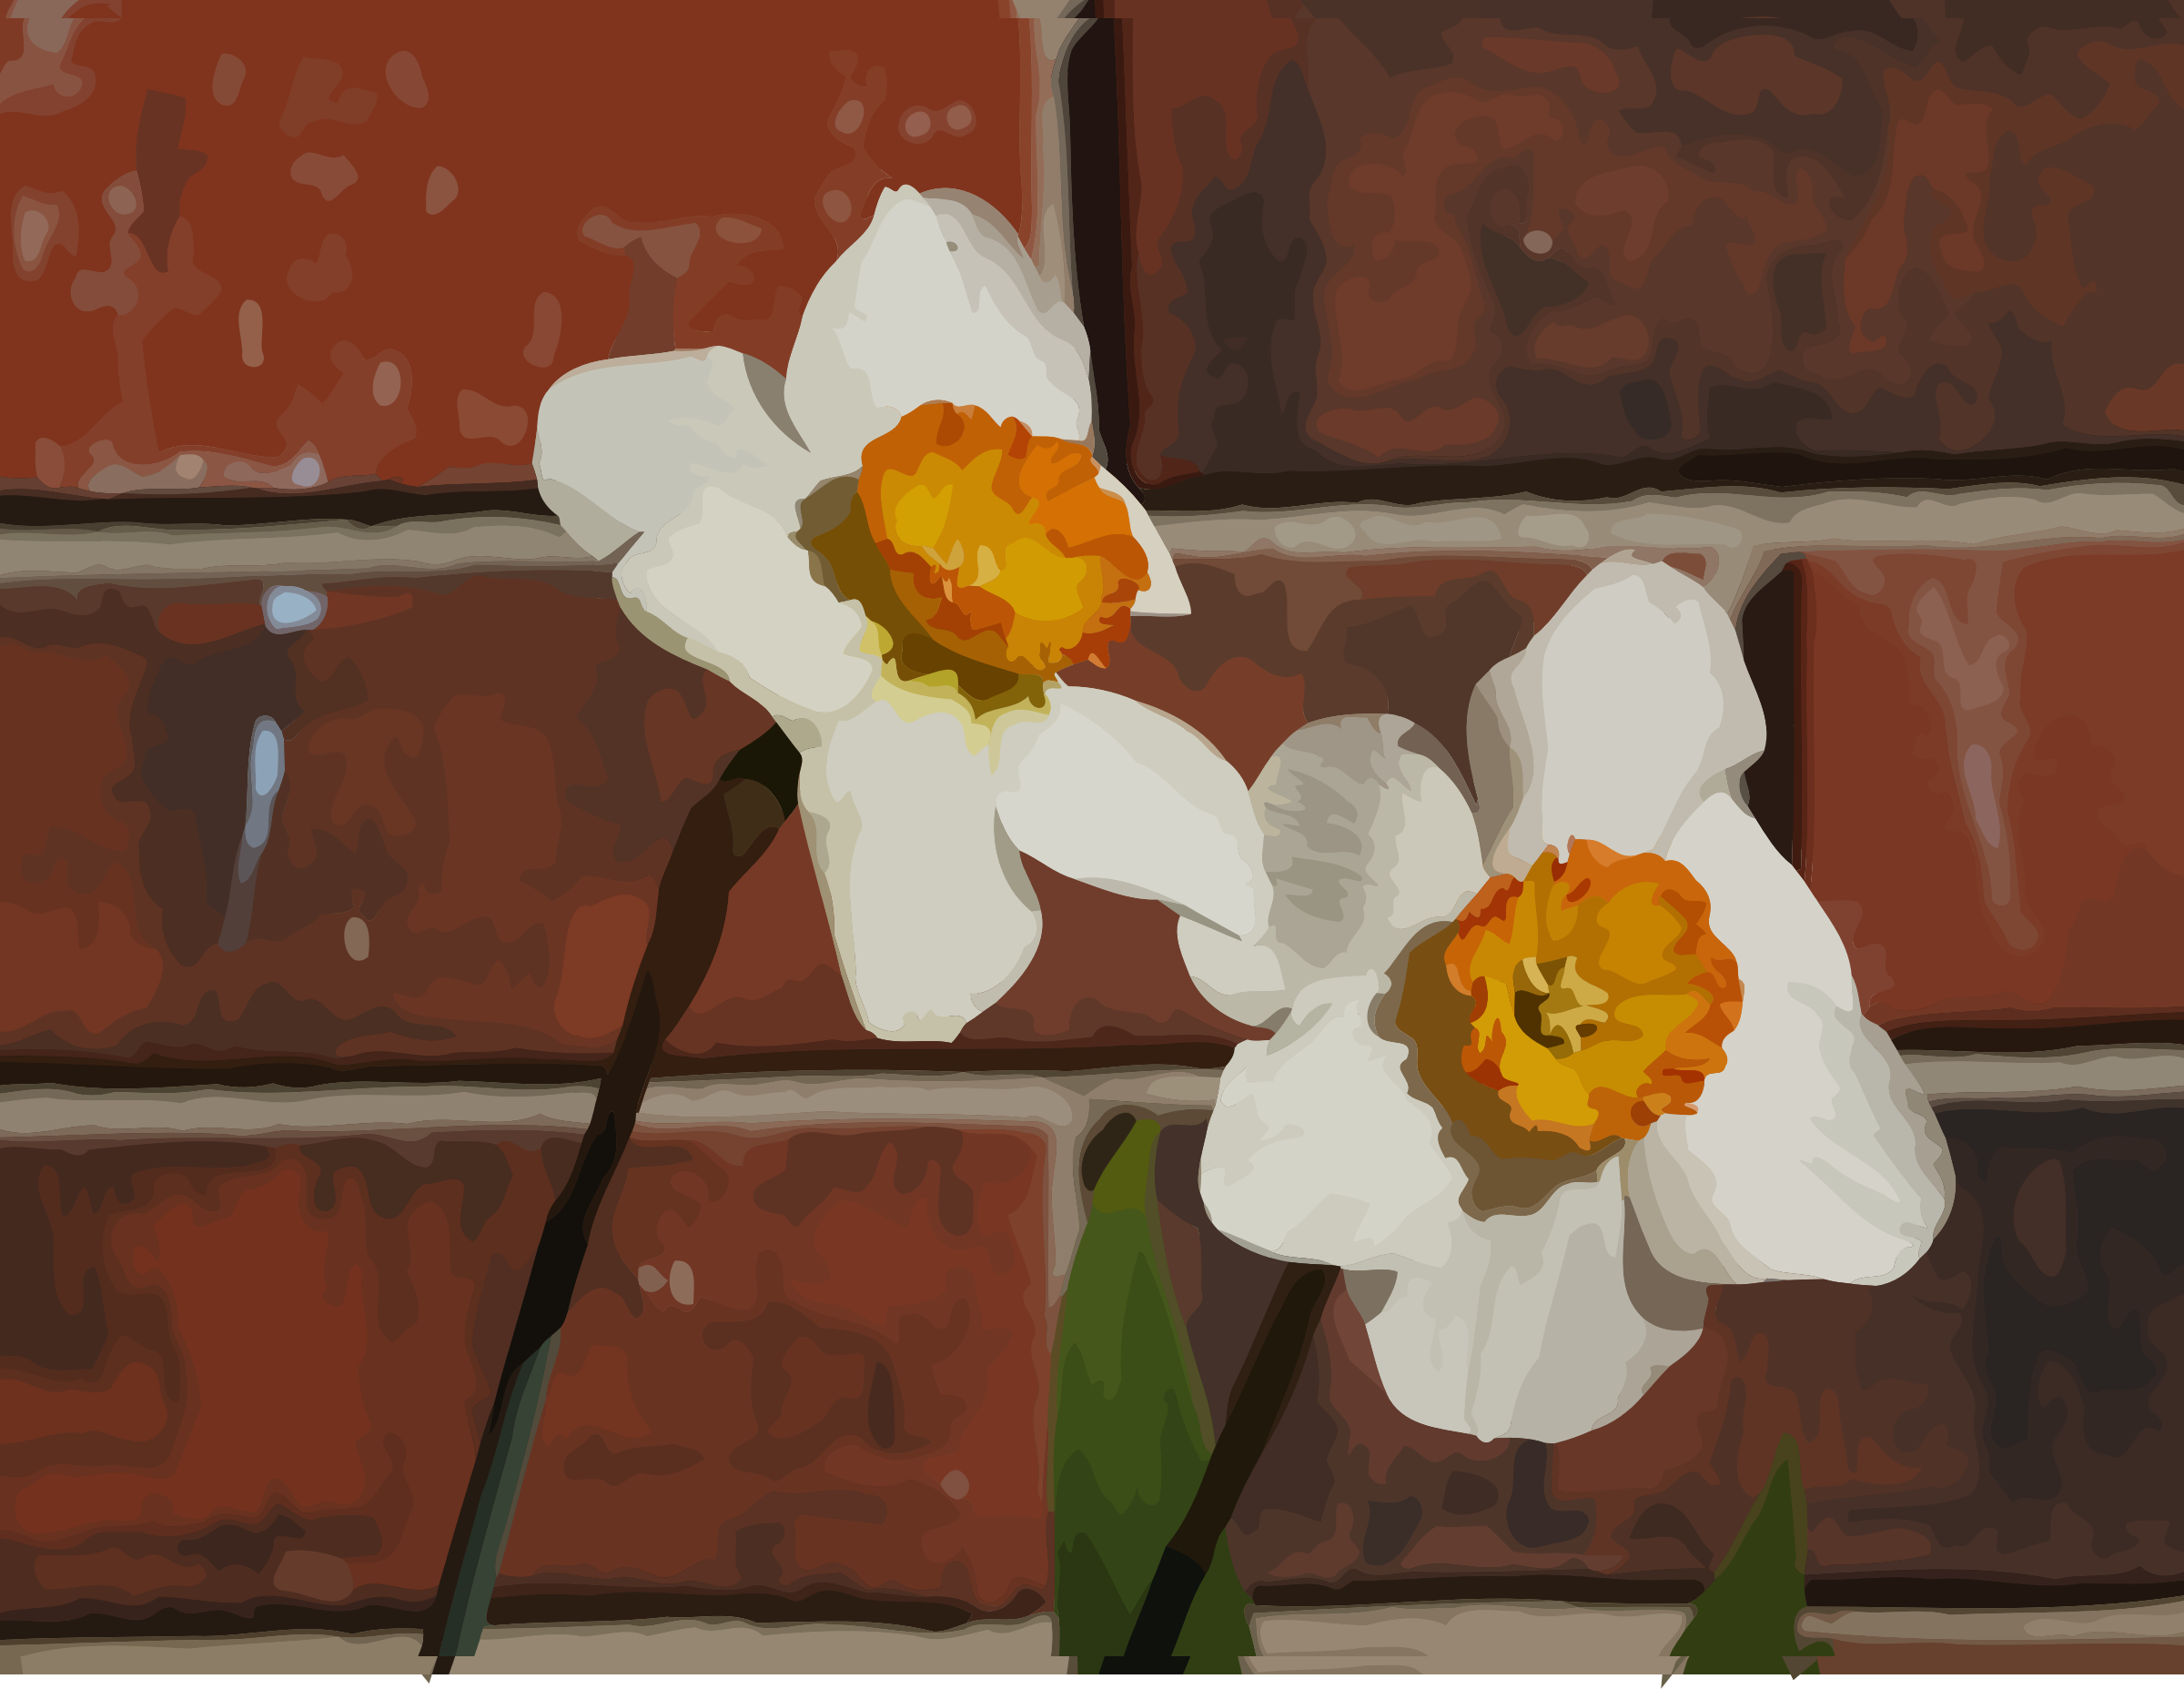 daffodils-09 by datteber